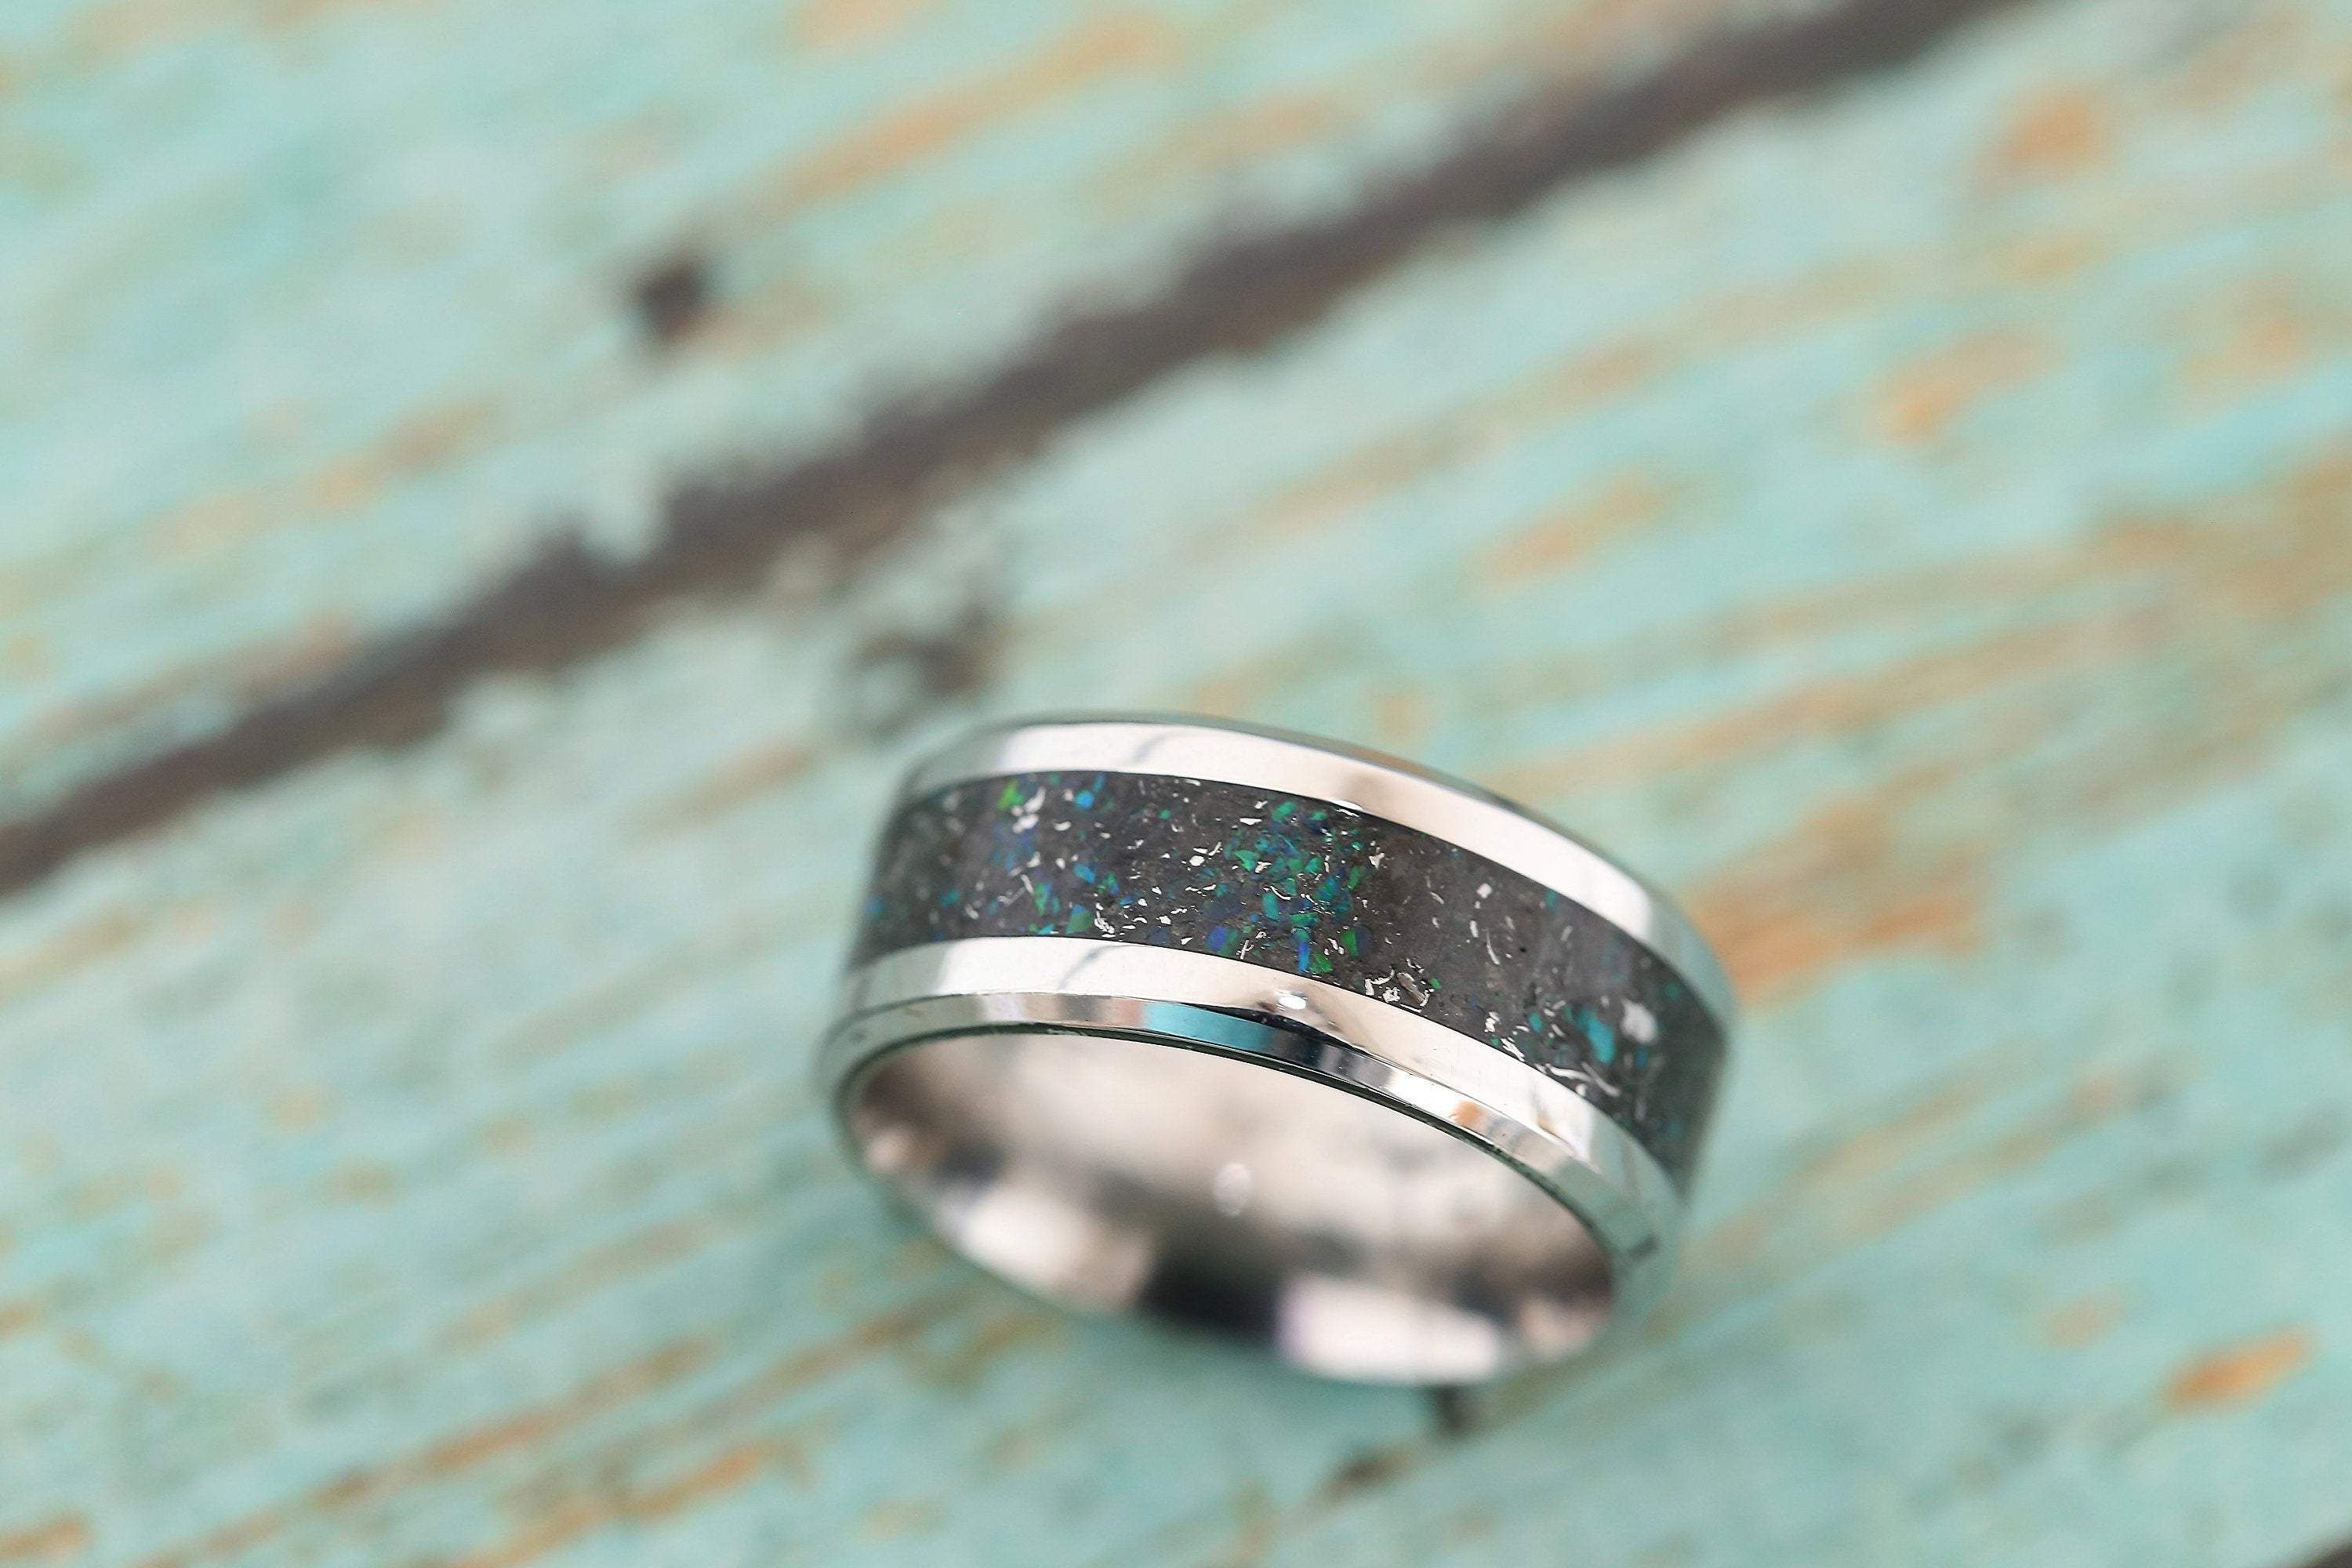 Pet Ash Ring Oval Gem Ring Pet Ashes SALE- SIZE 4- Cremation Ring Pet Cremation Jewelry